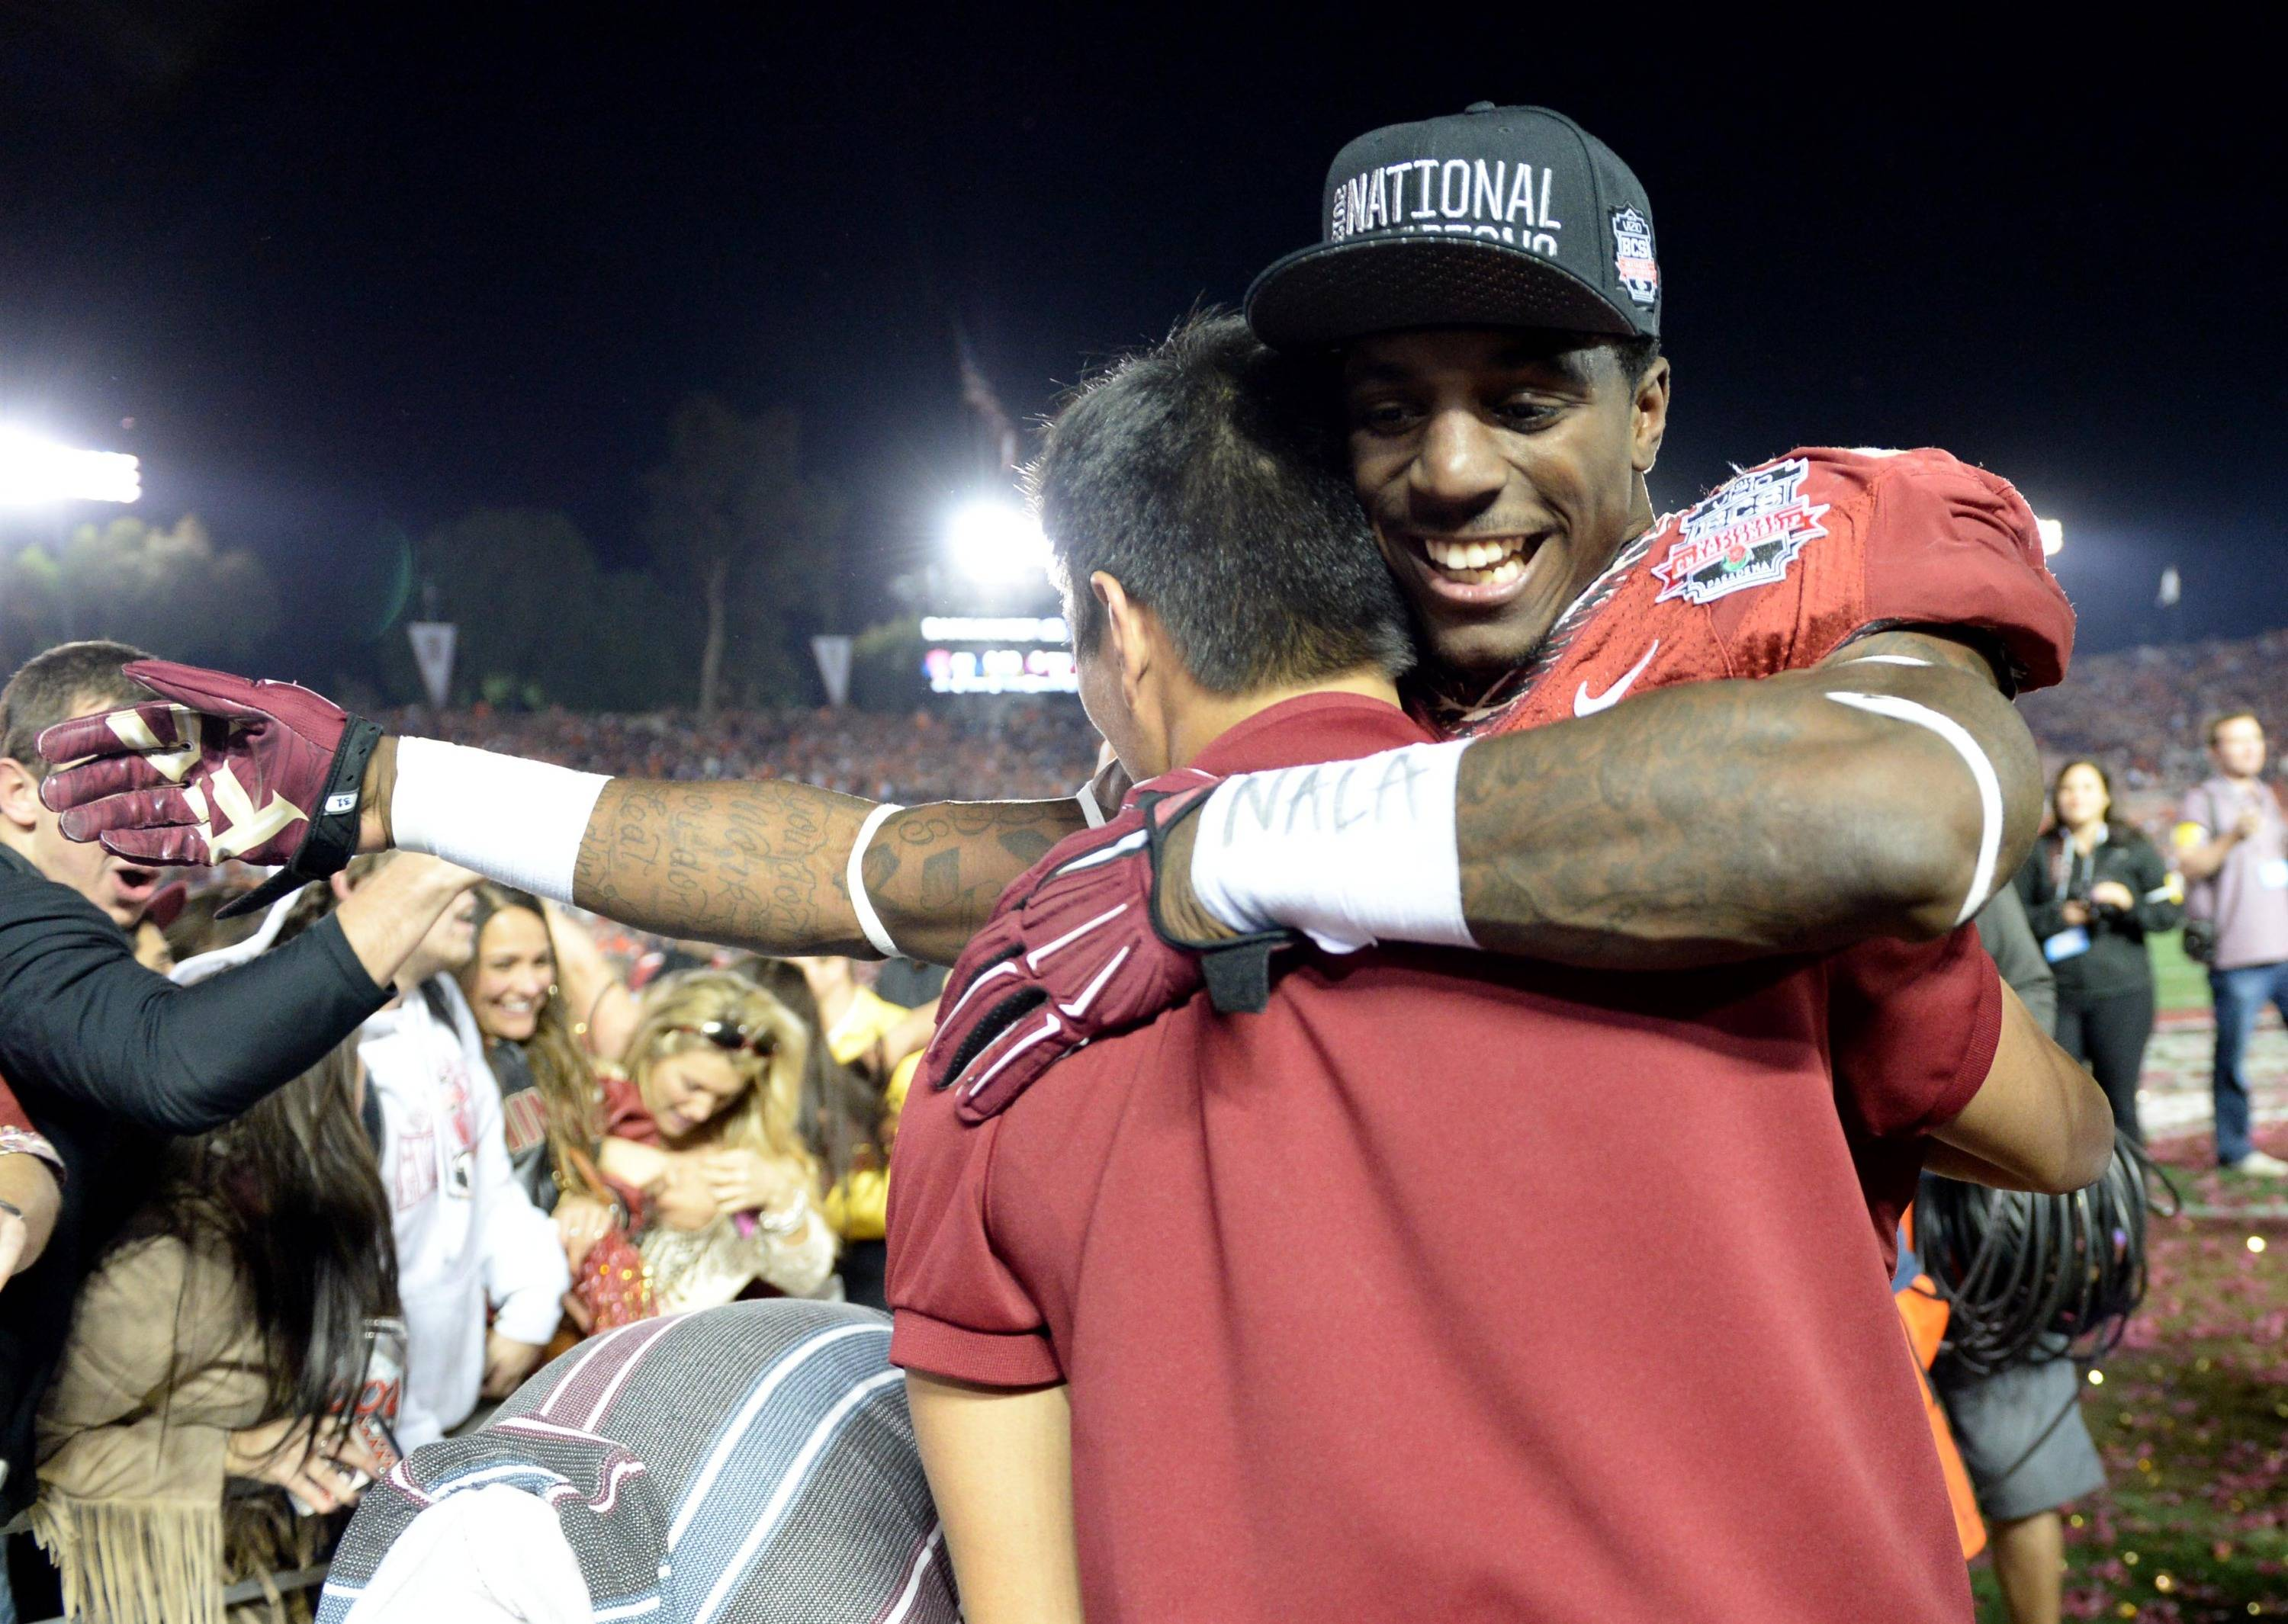 Jan 6, 2014; Pasadena, CA, USA; Florida State Seminoles running back James Wilder Jr. (32) celebrates after the 2014 BCS National Championship game against the Auburn Tigers at the Rose Bowl.  Mandatory Credit: Jayne Kamin-Oncea-USA TODAY Sports